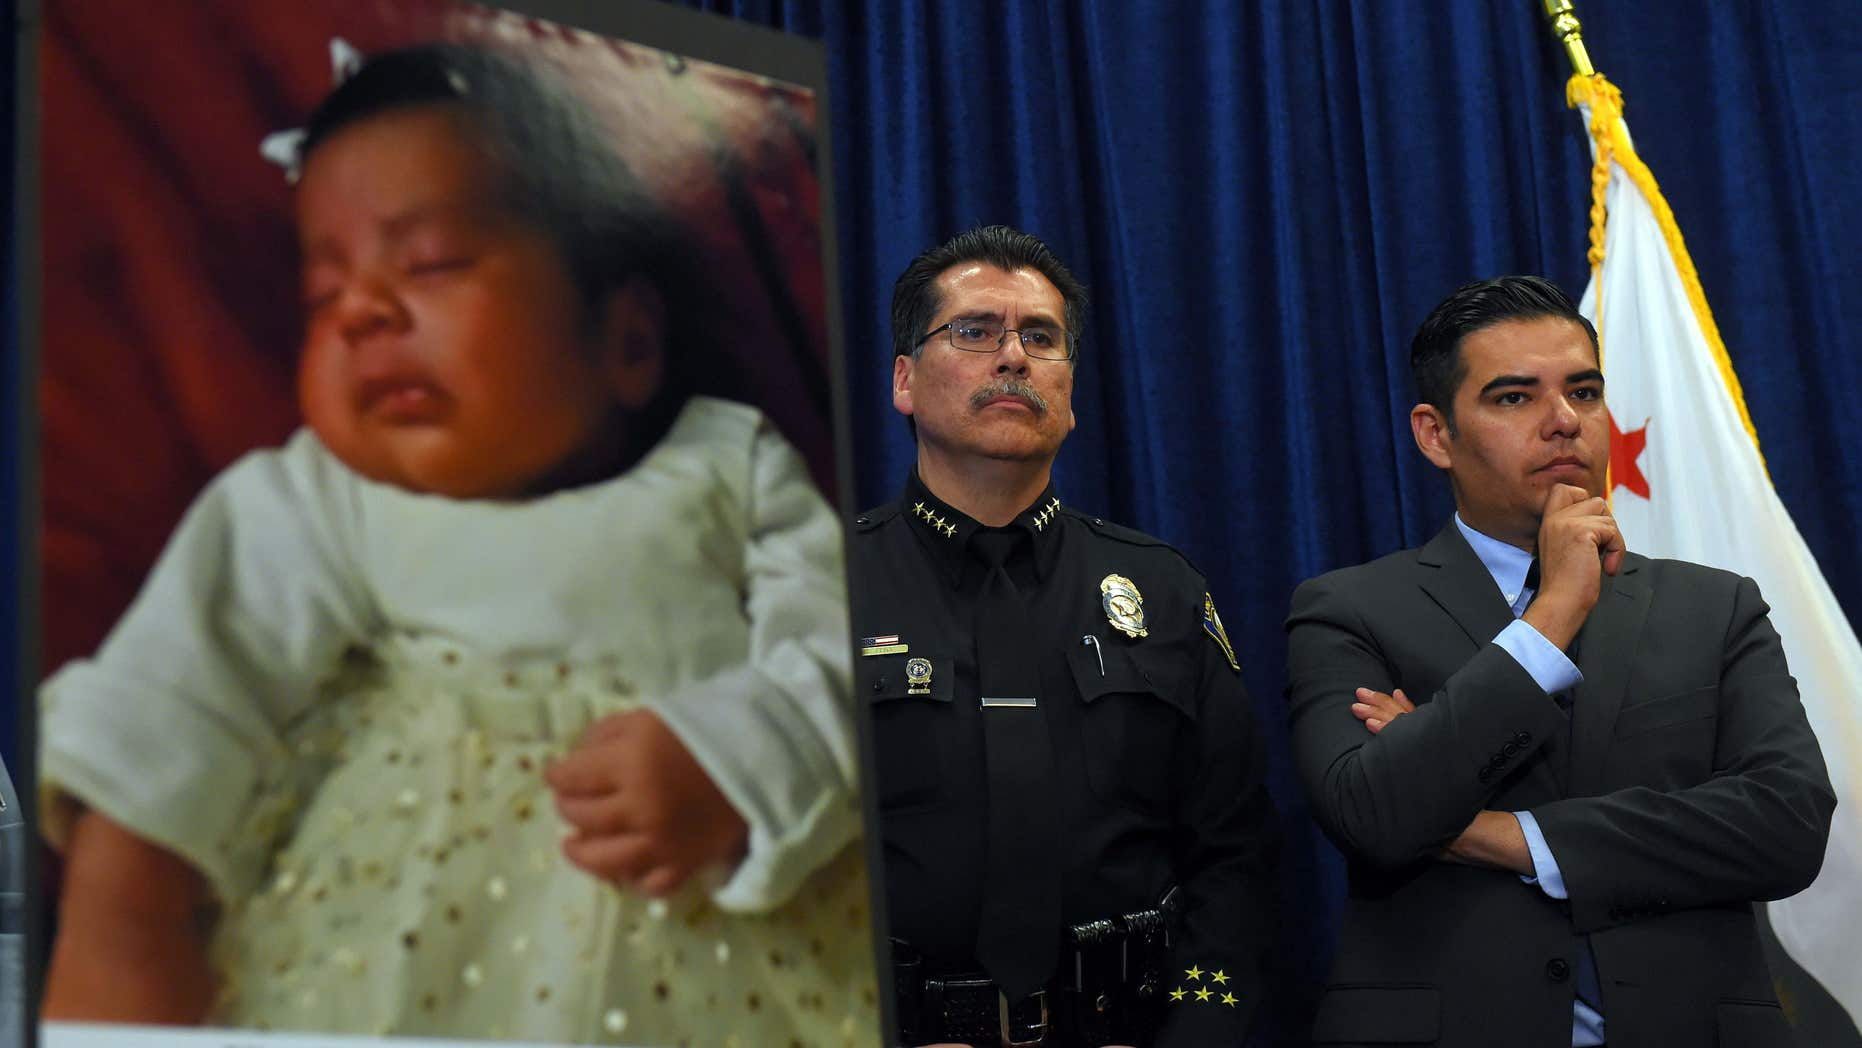 March 25, 2015: Long Beach Police Chief Robert Luna, left, and Mayor Robert Garcia stand during a news conference in Long Beach, Calif.